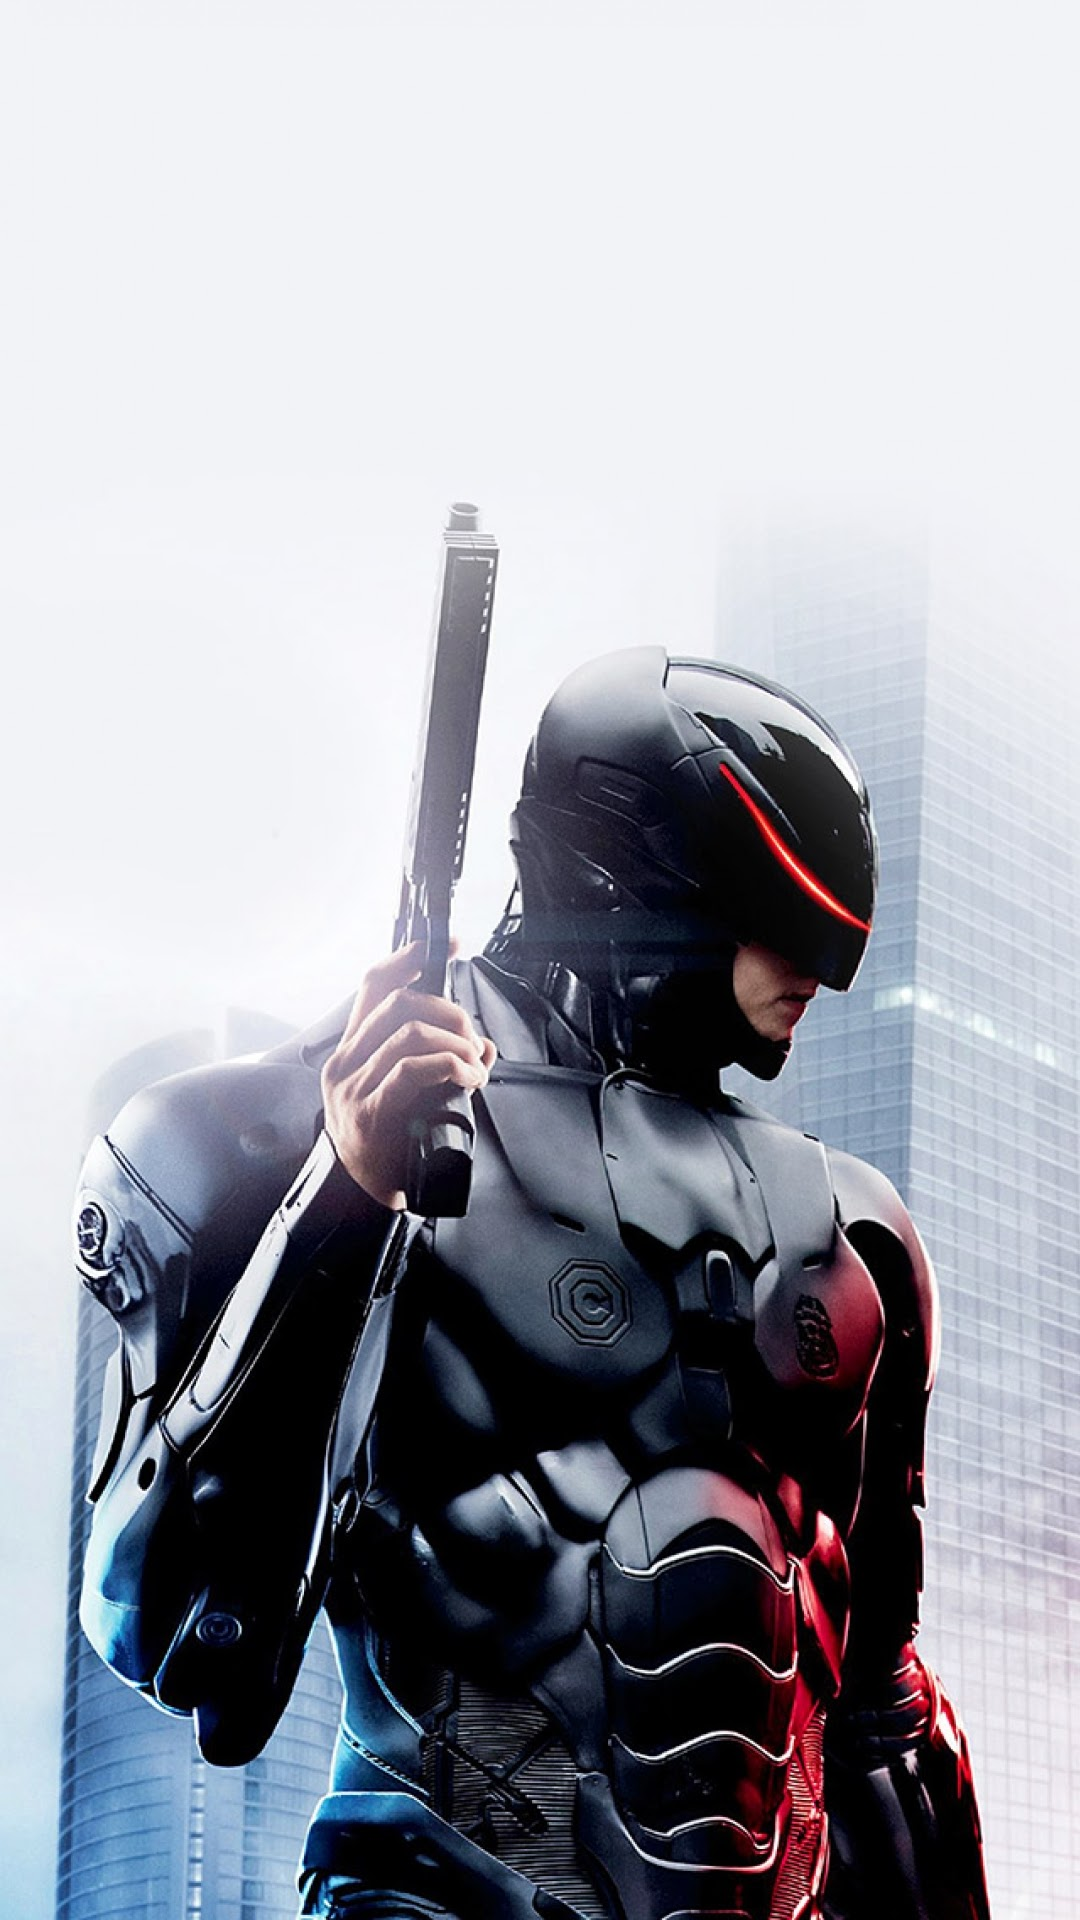 click here to download 1080x1920 pixel robocop 2014 armor ios7 android best wallpaper